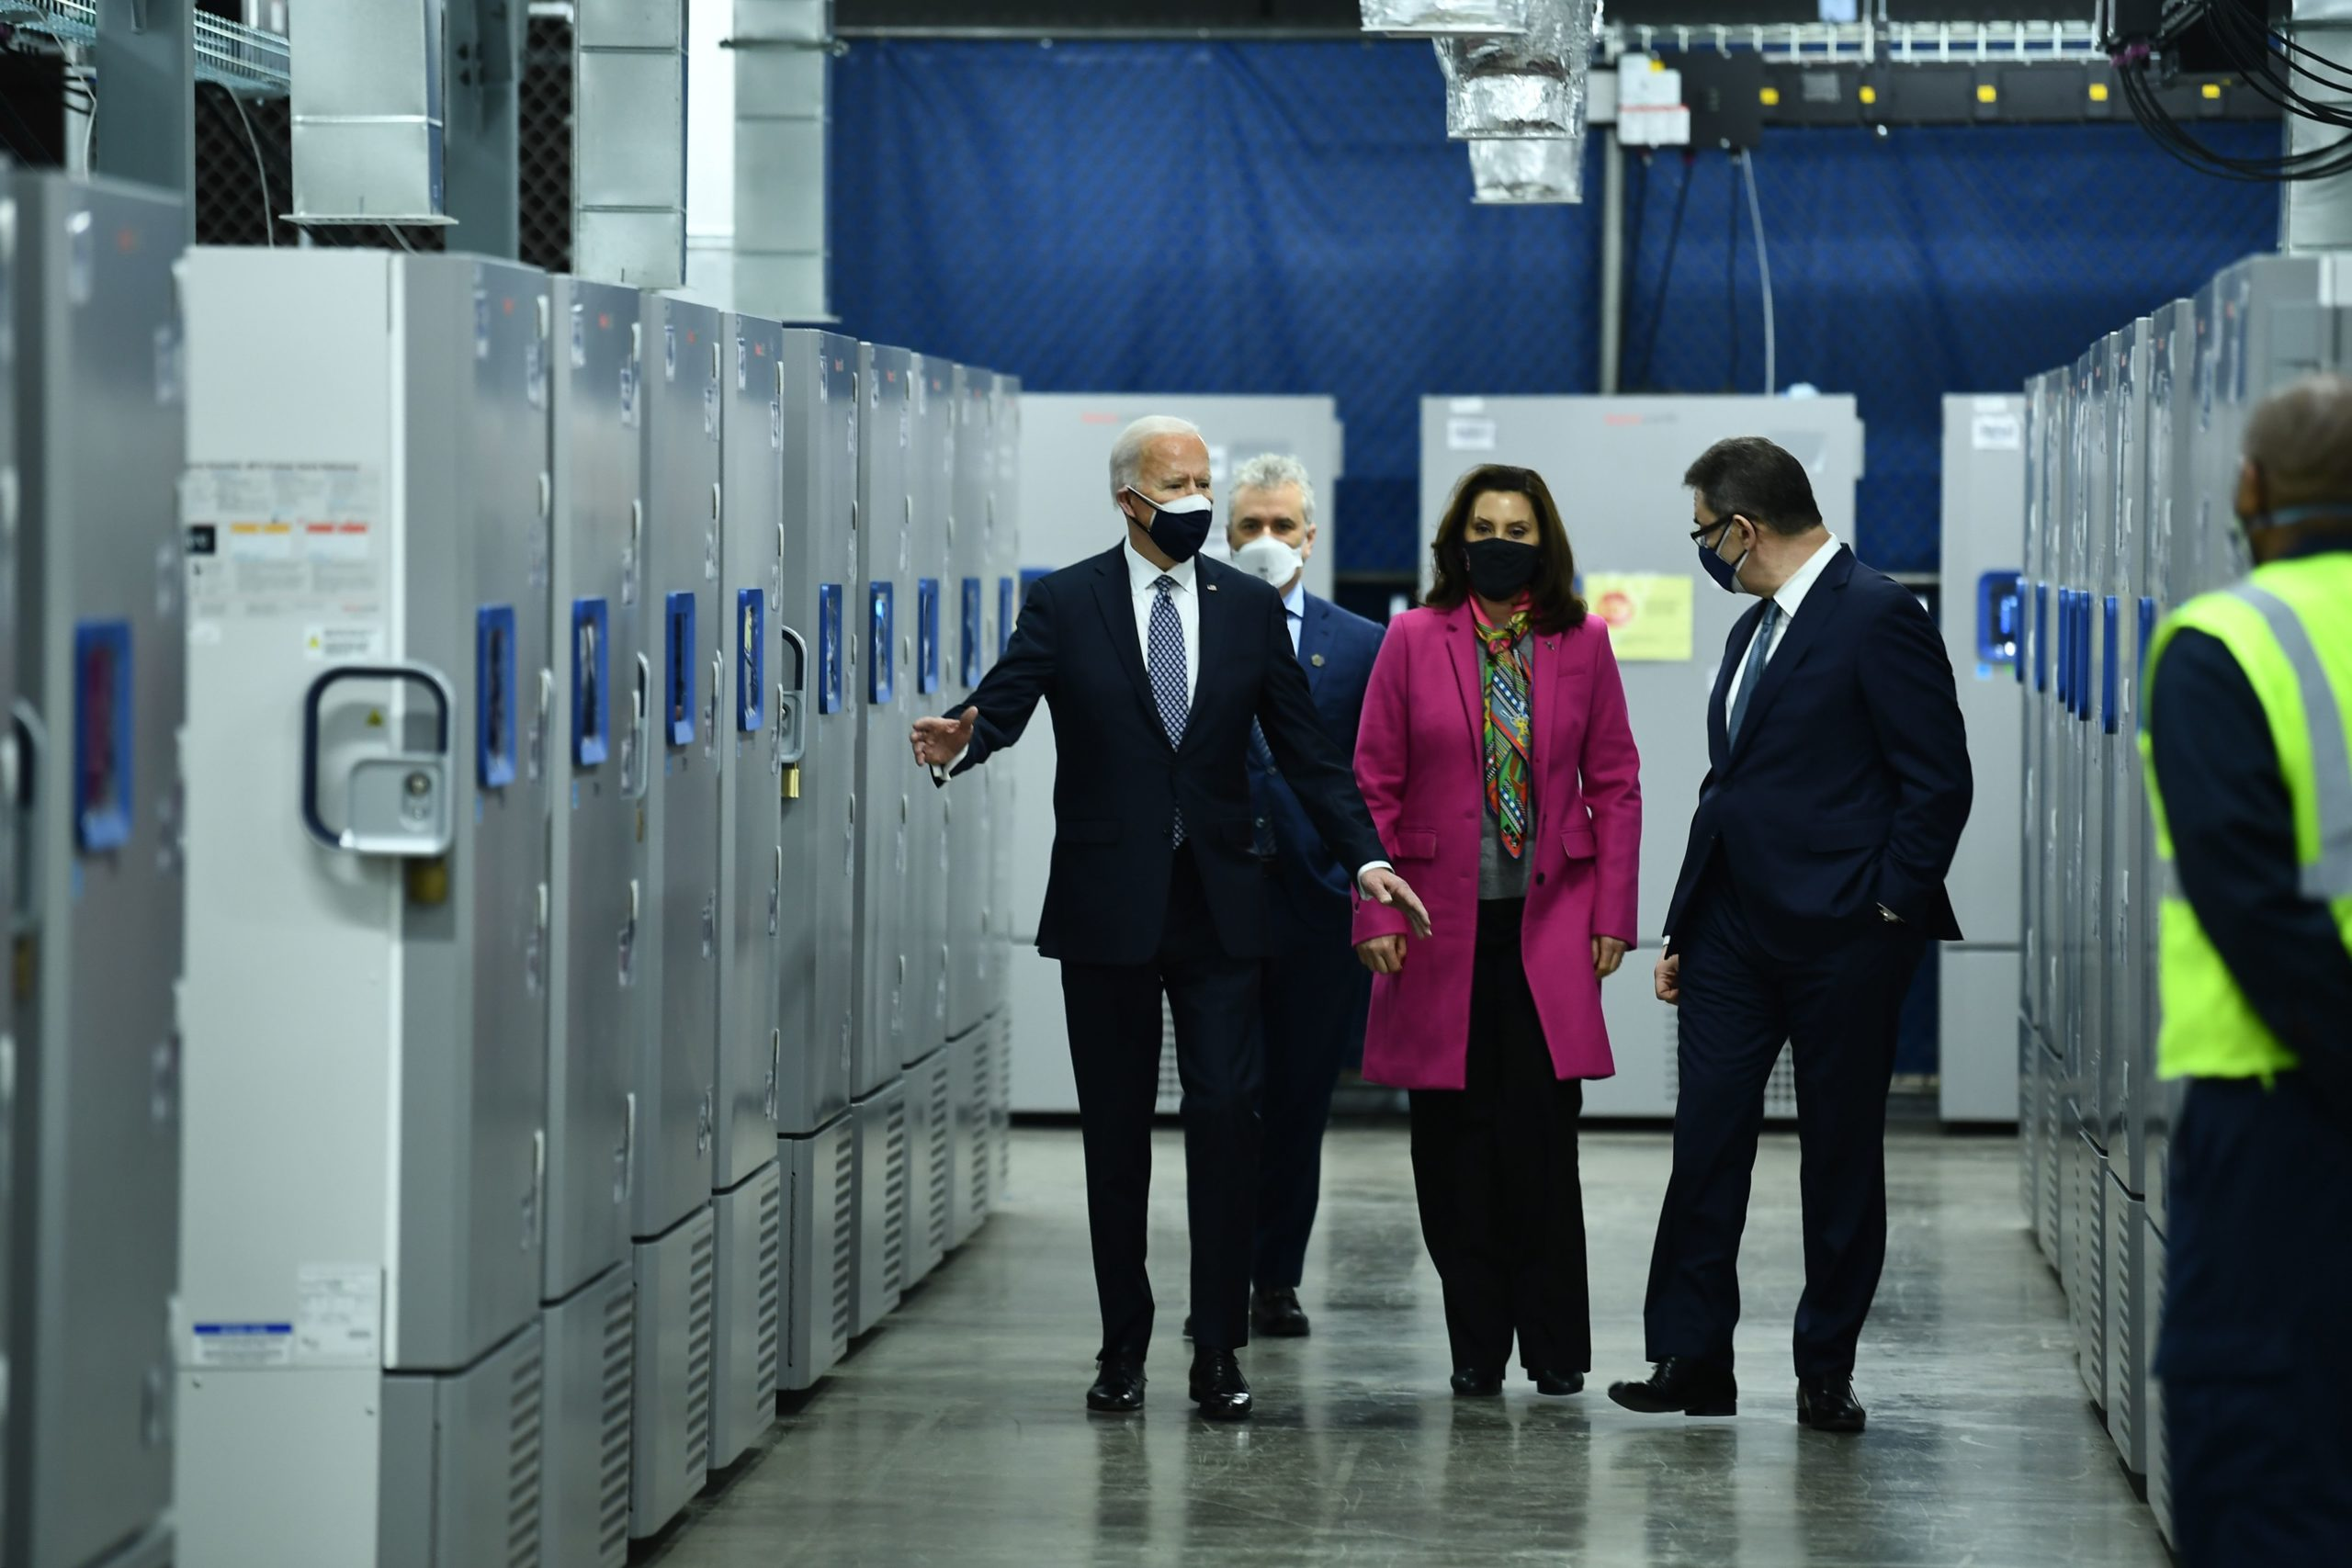 President Joe Biden, with Michigan Governor Gretchen Whitmer and Pfizer CEO Albert Bourla, tours Covid-19 vaccine freezers at a Pfizer manufacturing site on February 19, 2021, in Kalamazoo, Michigan. (BRENDAN SMIALOWSKI/AFP via Getty Images)